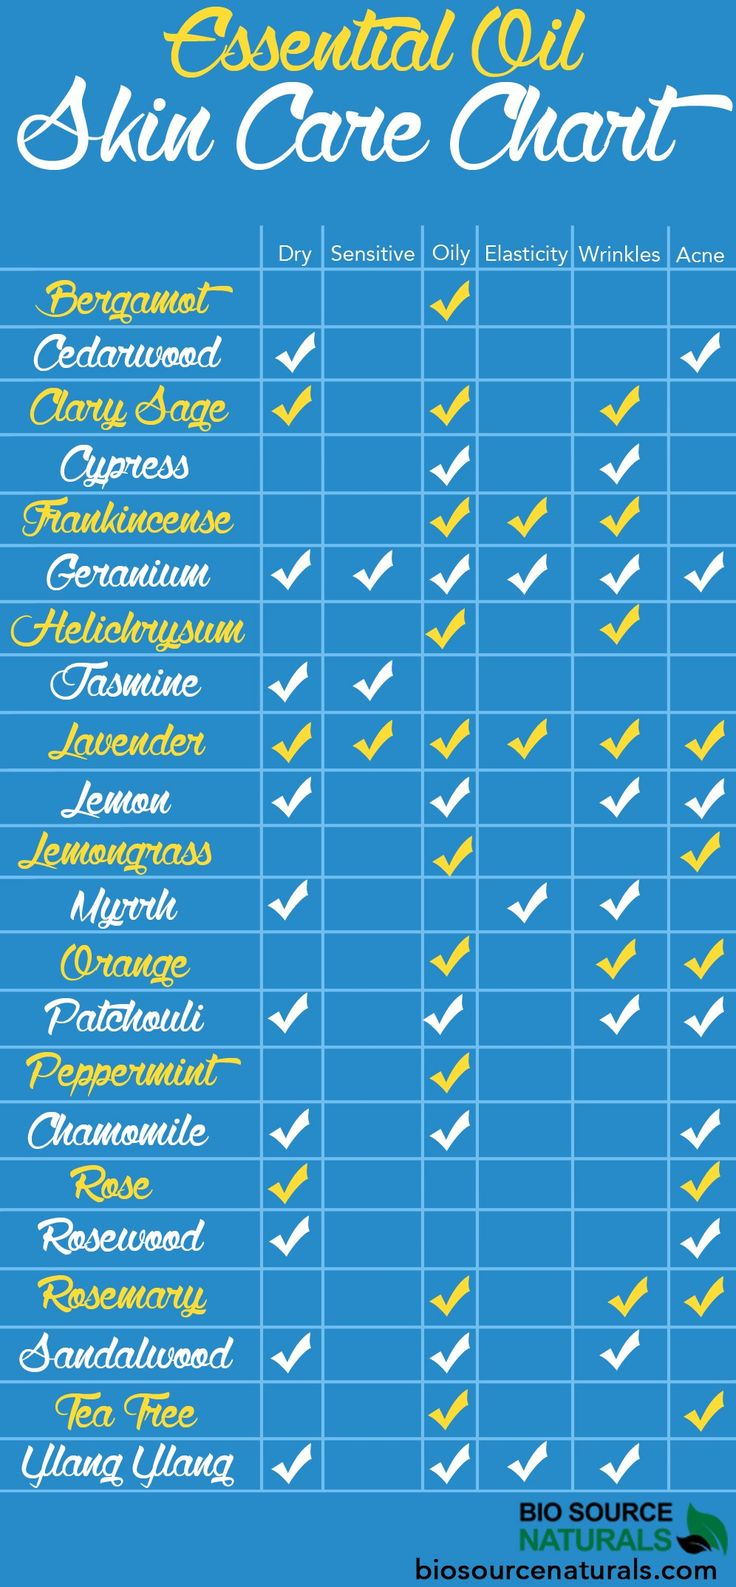 Essential Oil Skin Care Chart